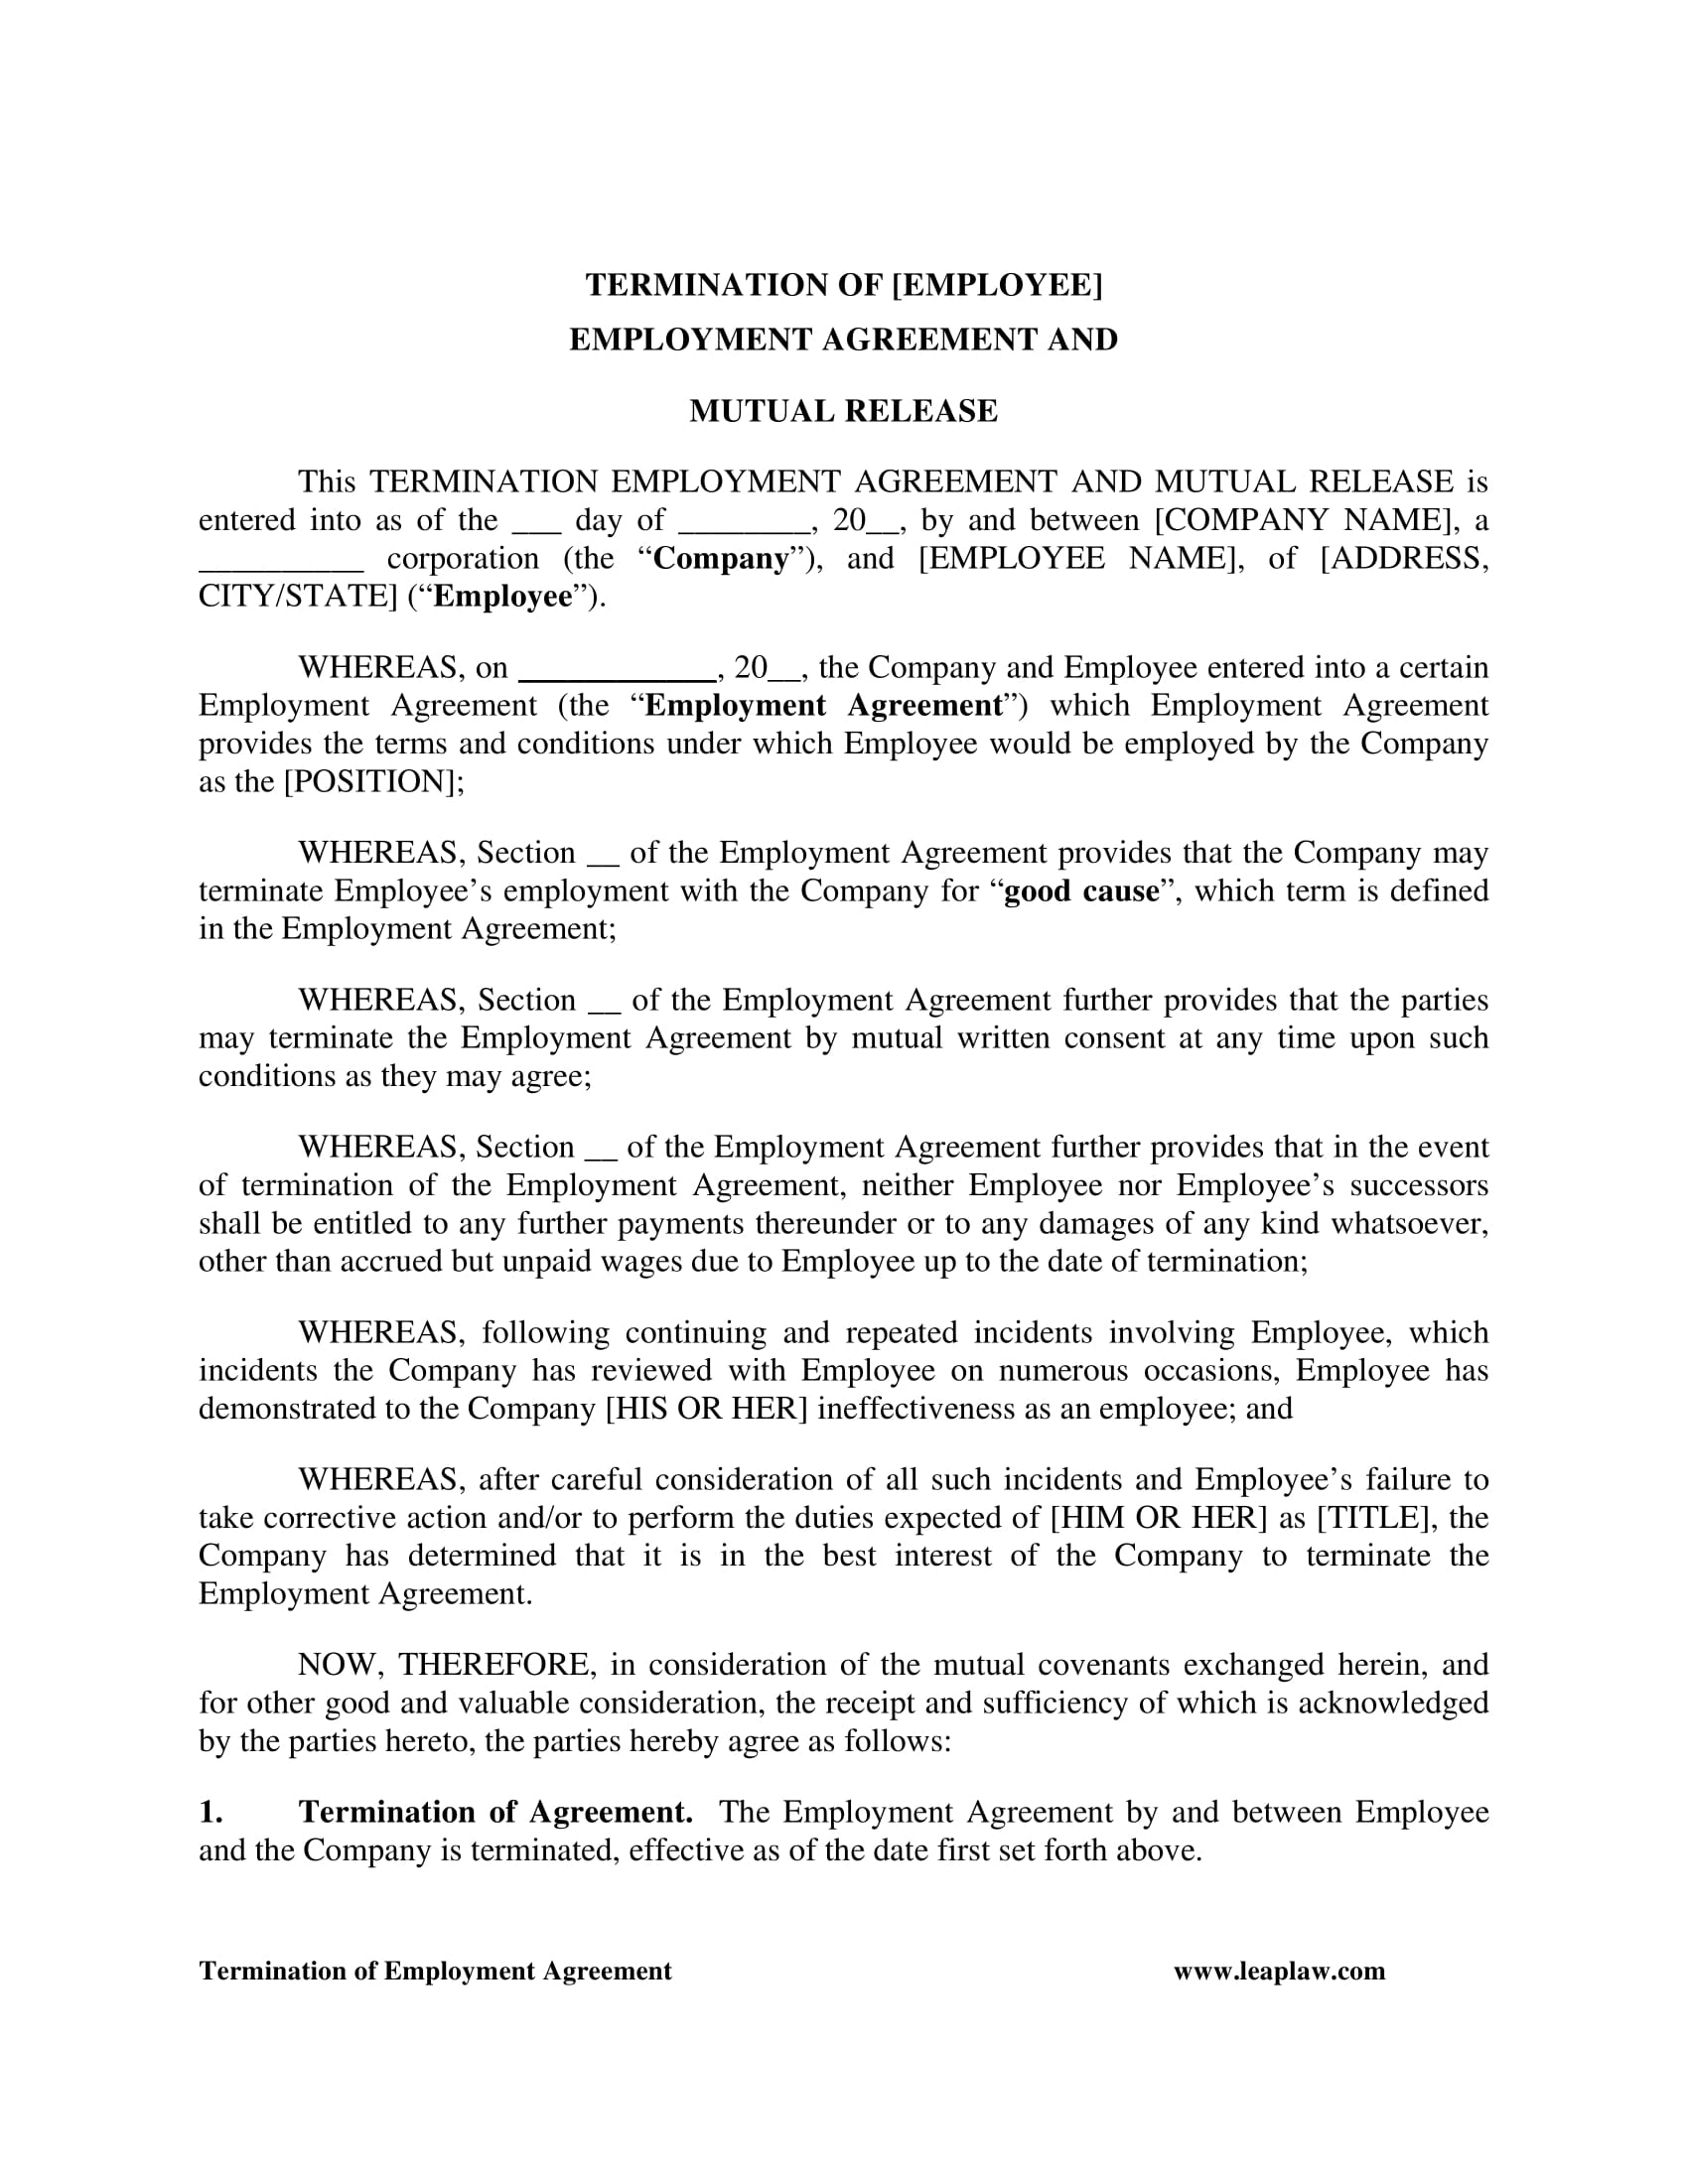 Termination And Mutual Release Agreement 5 Mutual Release Agreement Contract Forms Pdf Doc